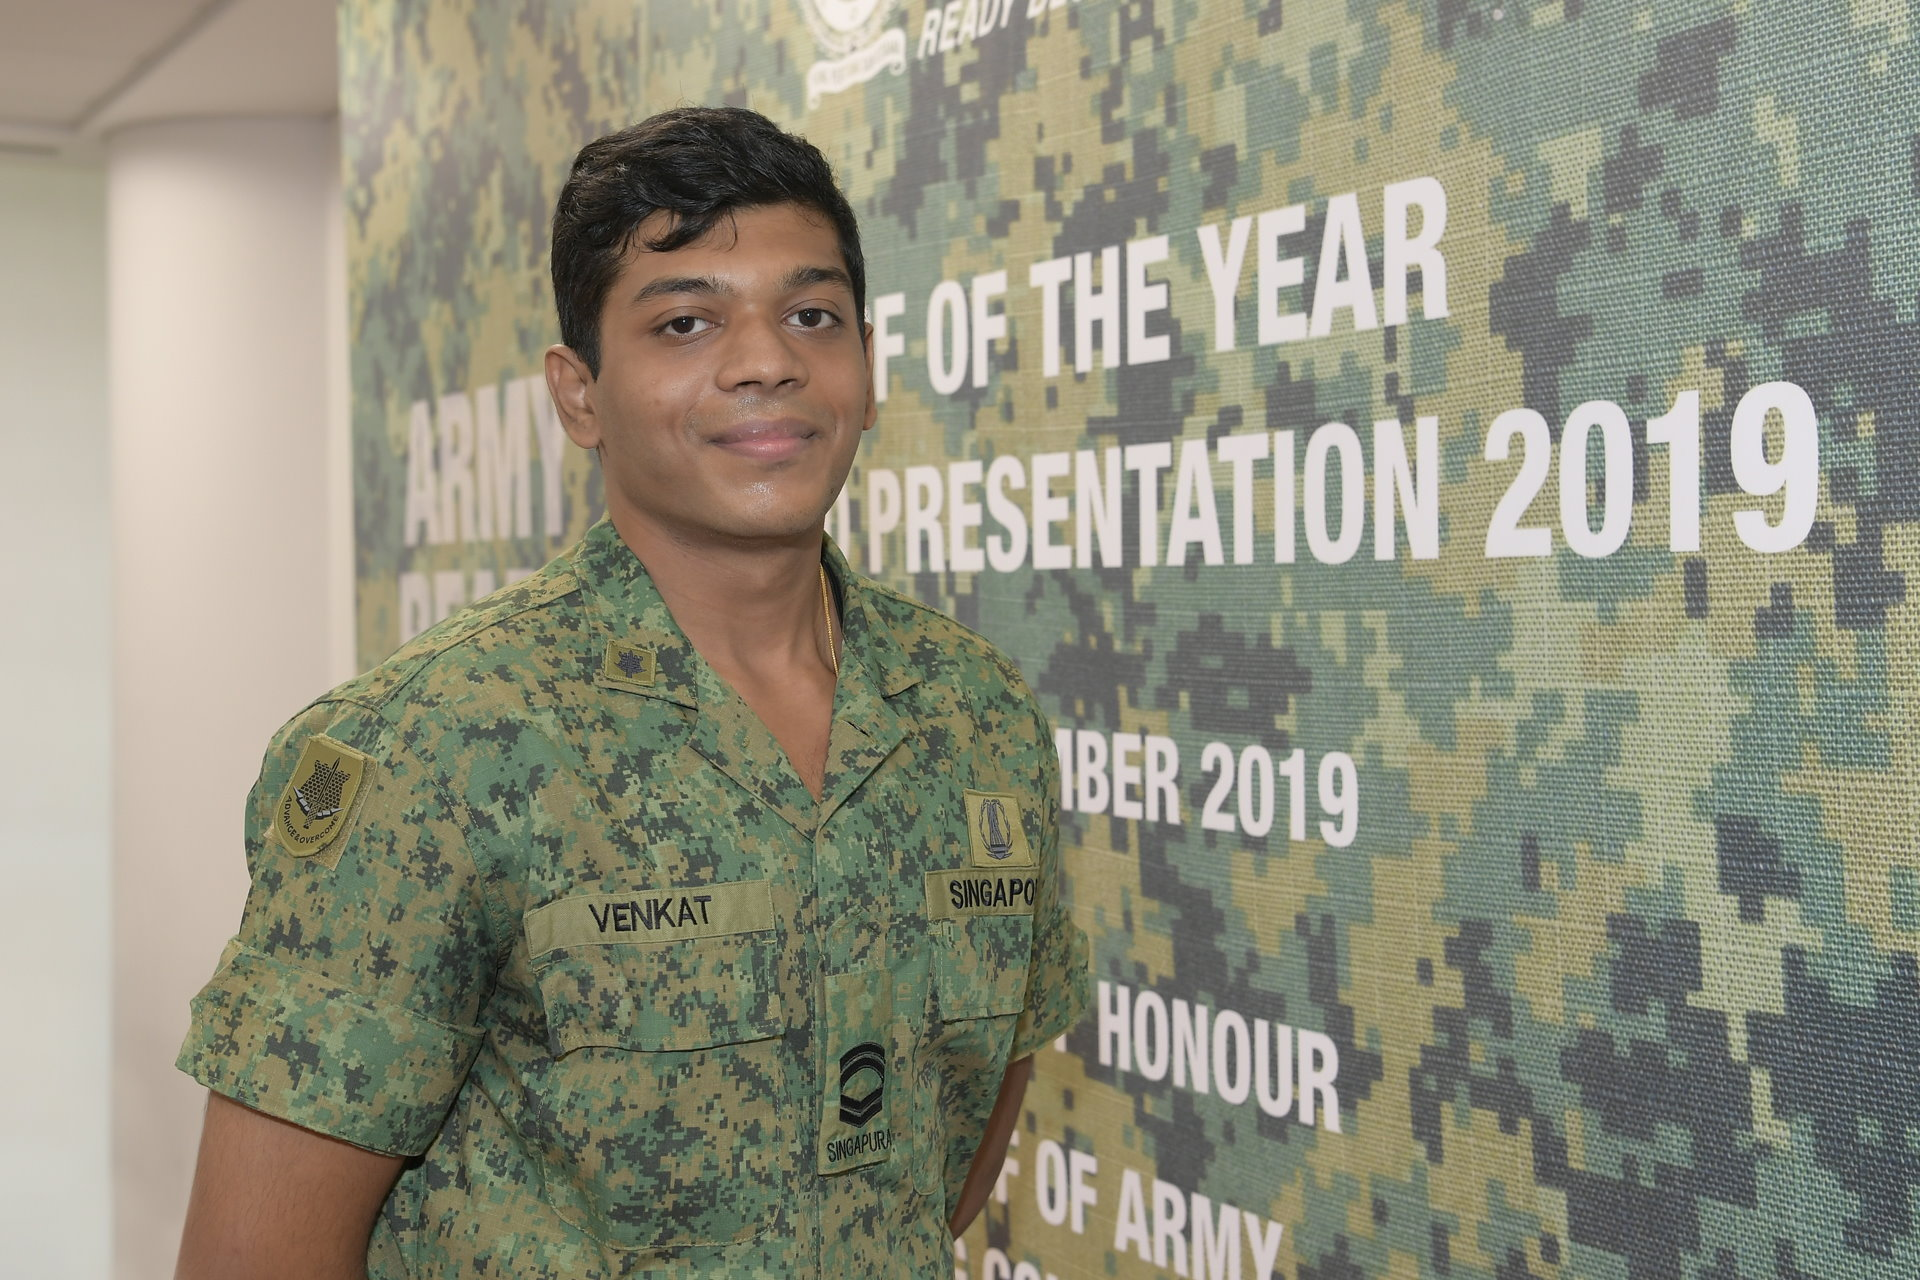 From obese to IPPT Gold & becoming NSF of the Year